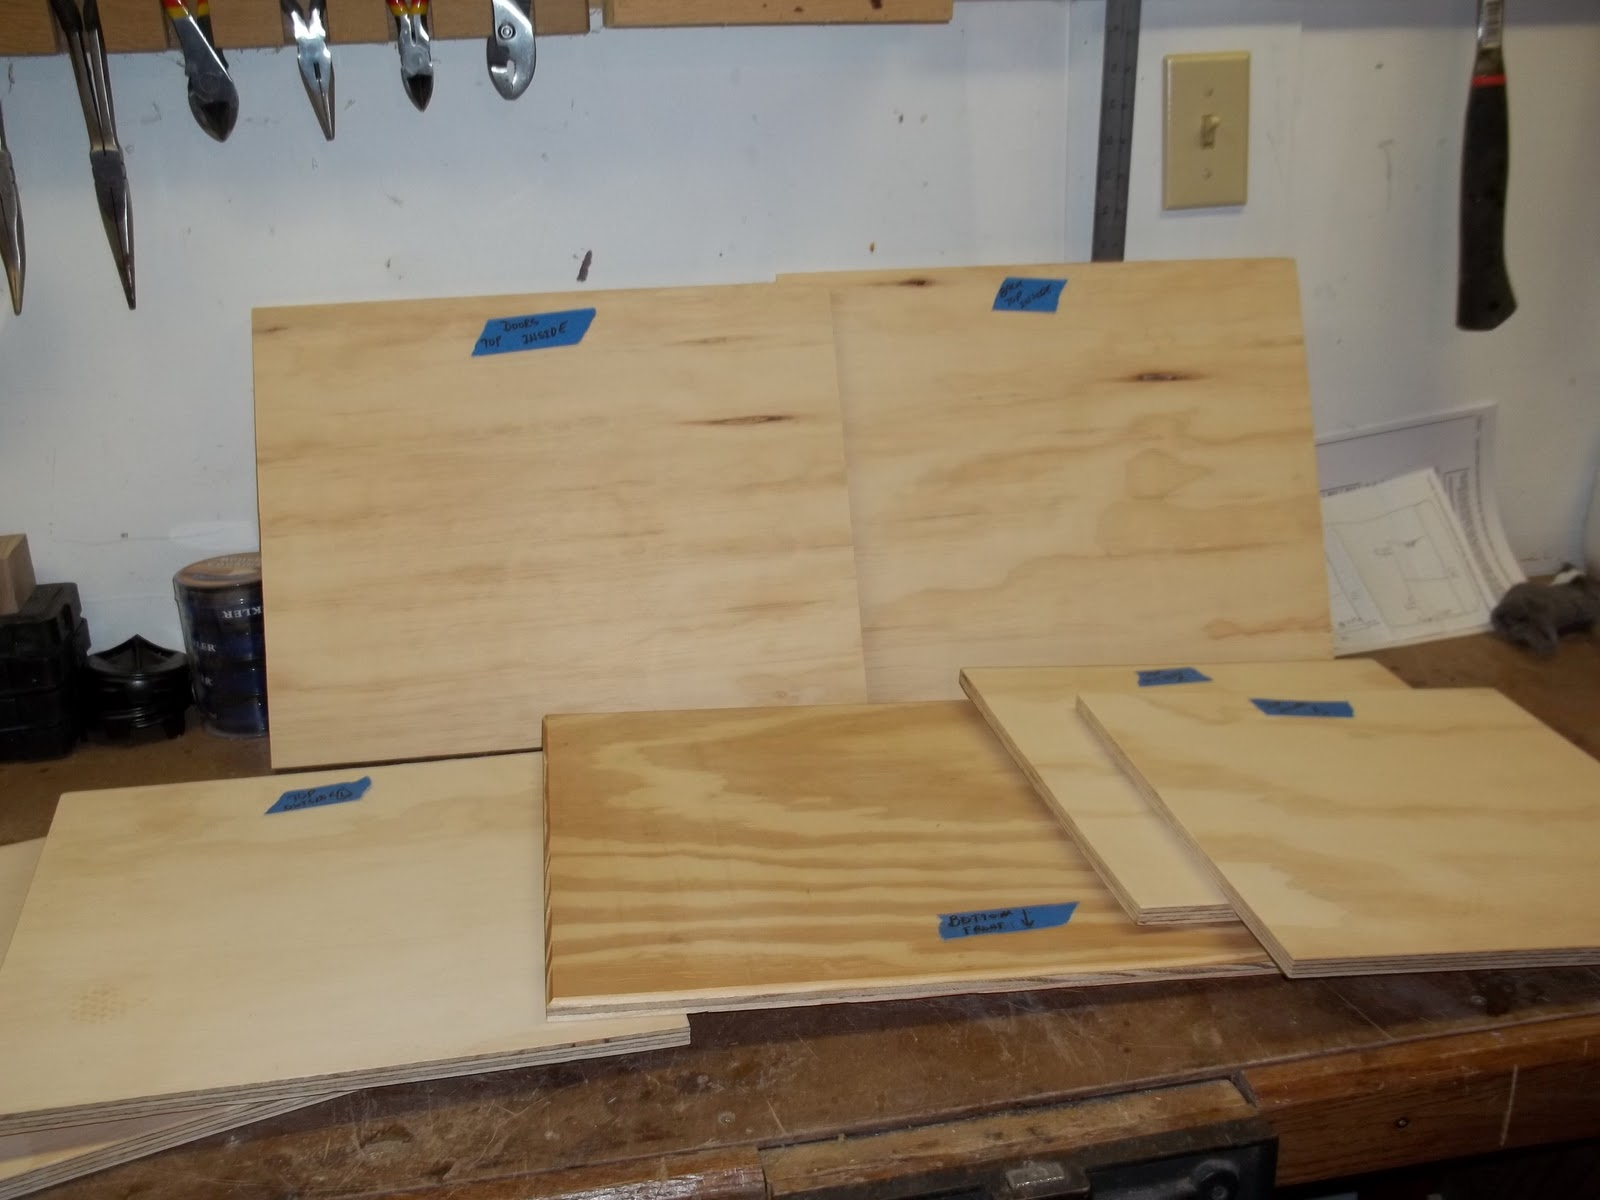 Dag wood shop notes taking the edge off part 1 i started by building the case this case would hold the table top plus store the router inside i cut out all these parts from 12 inch plywood greentooth Image collections